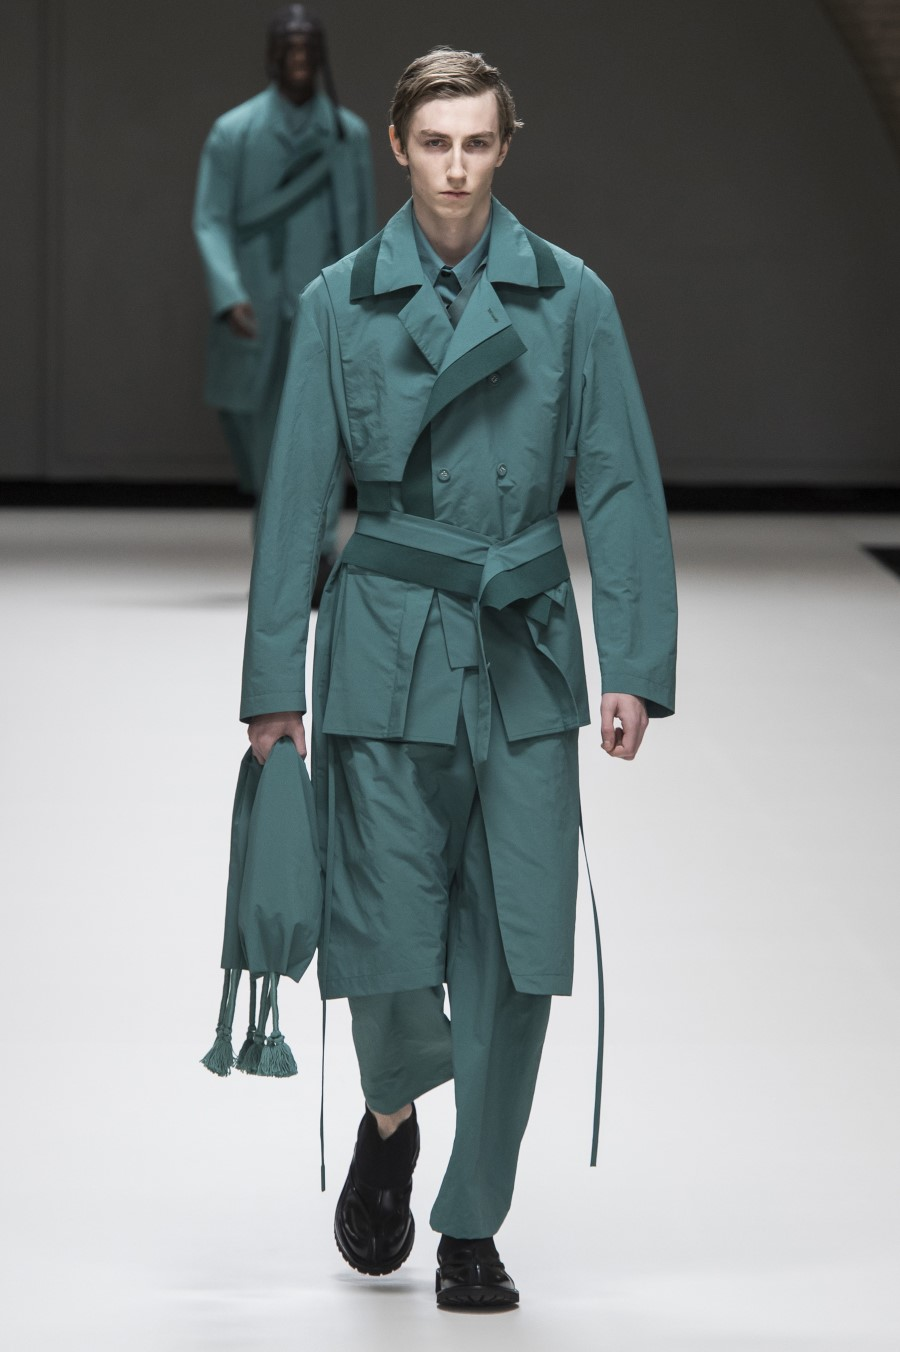 Craig Green Fall Winter 2019 – London Fashion Week Men's